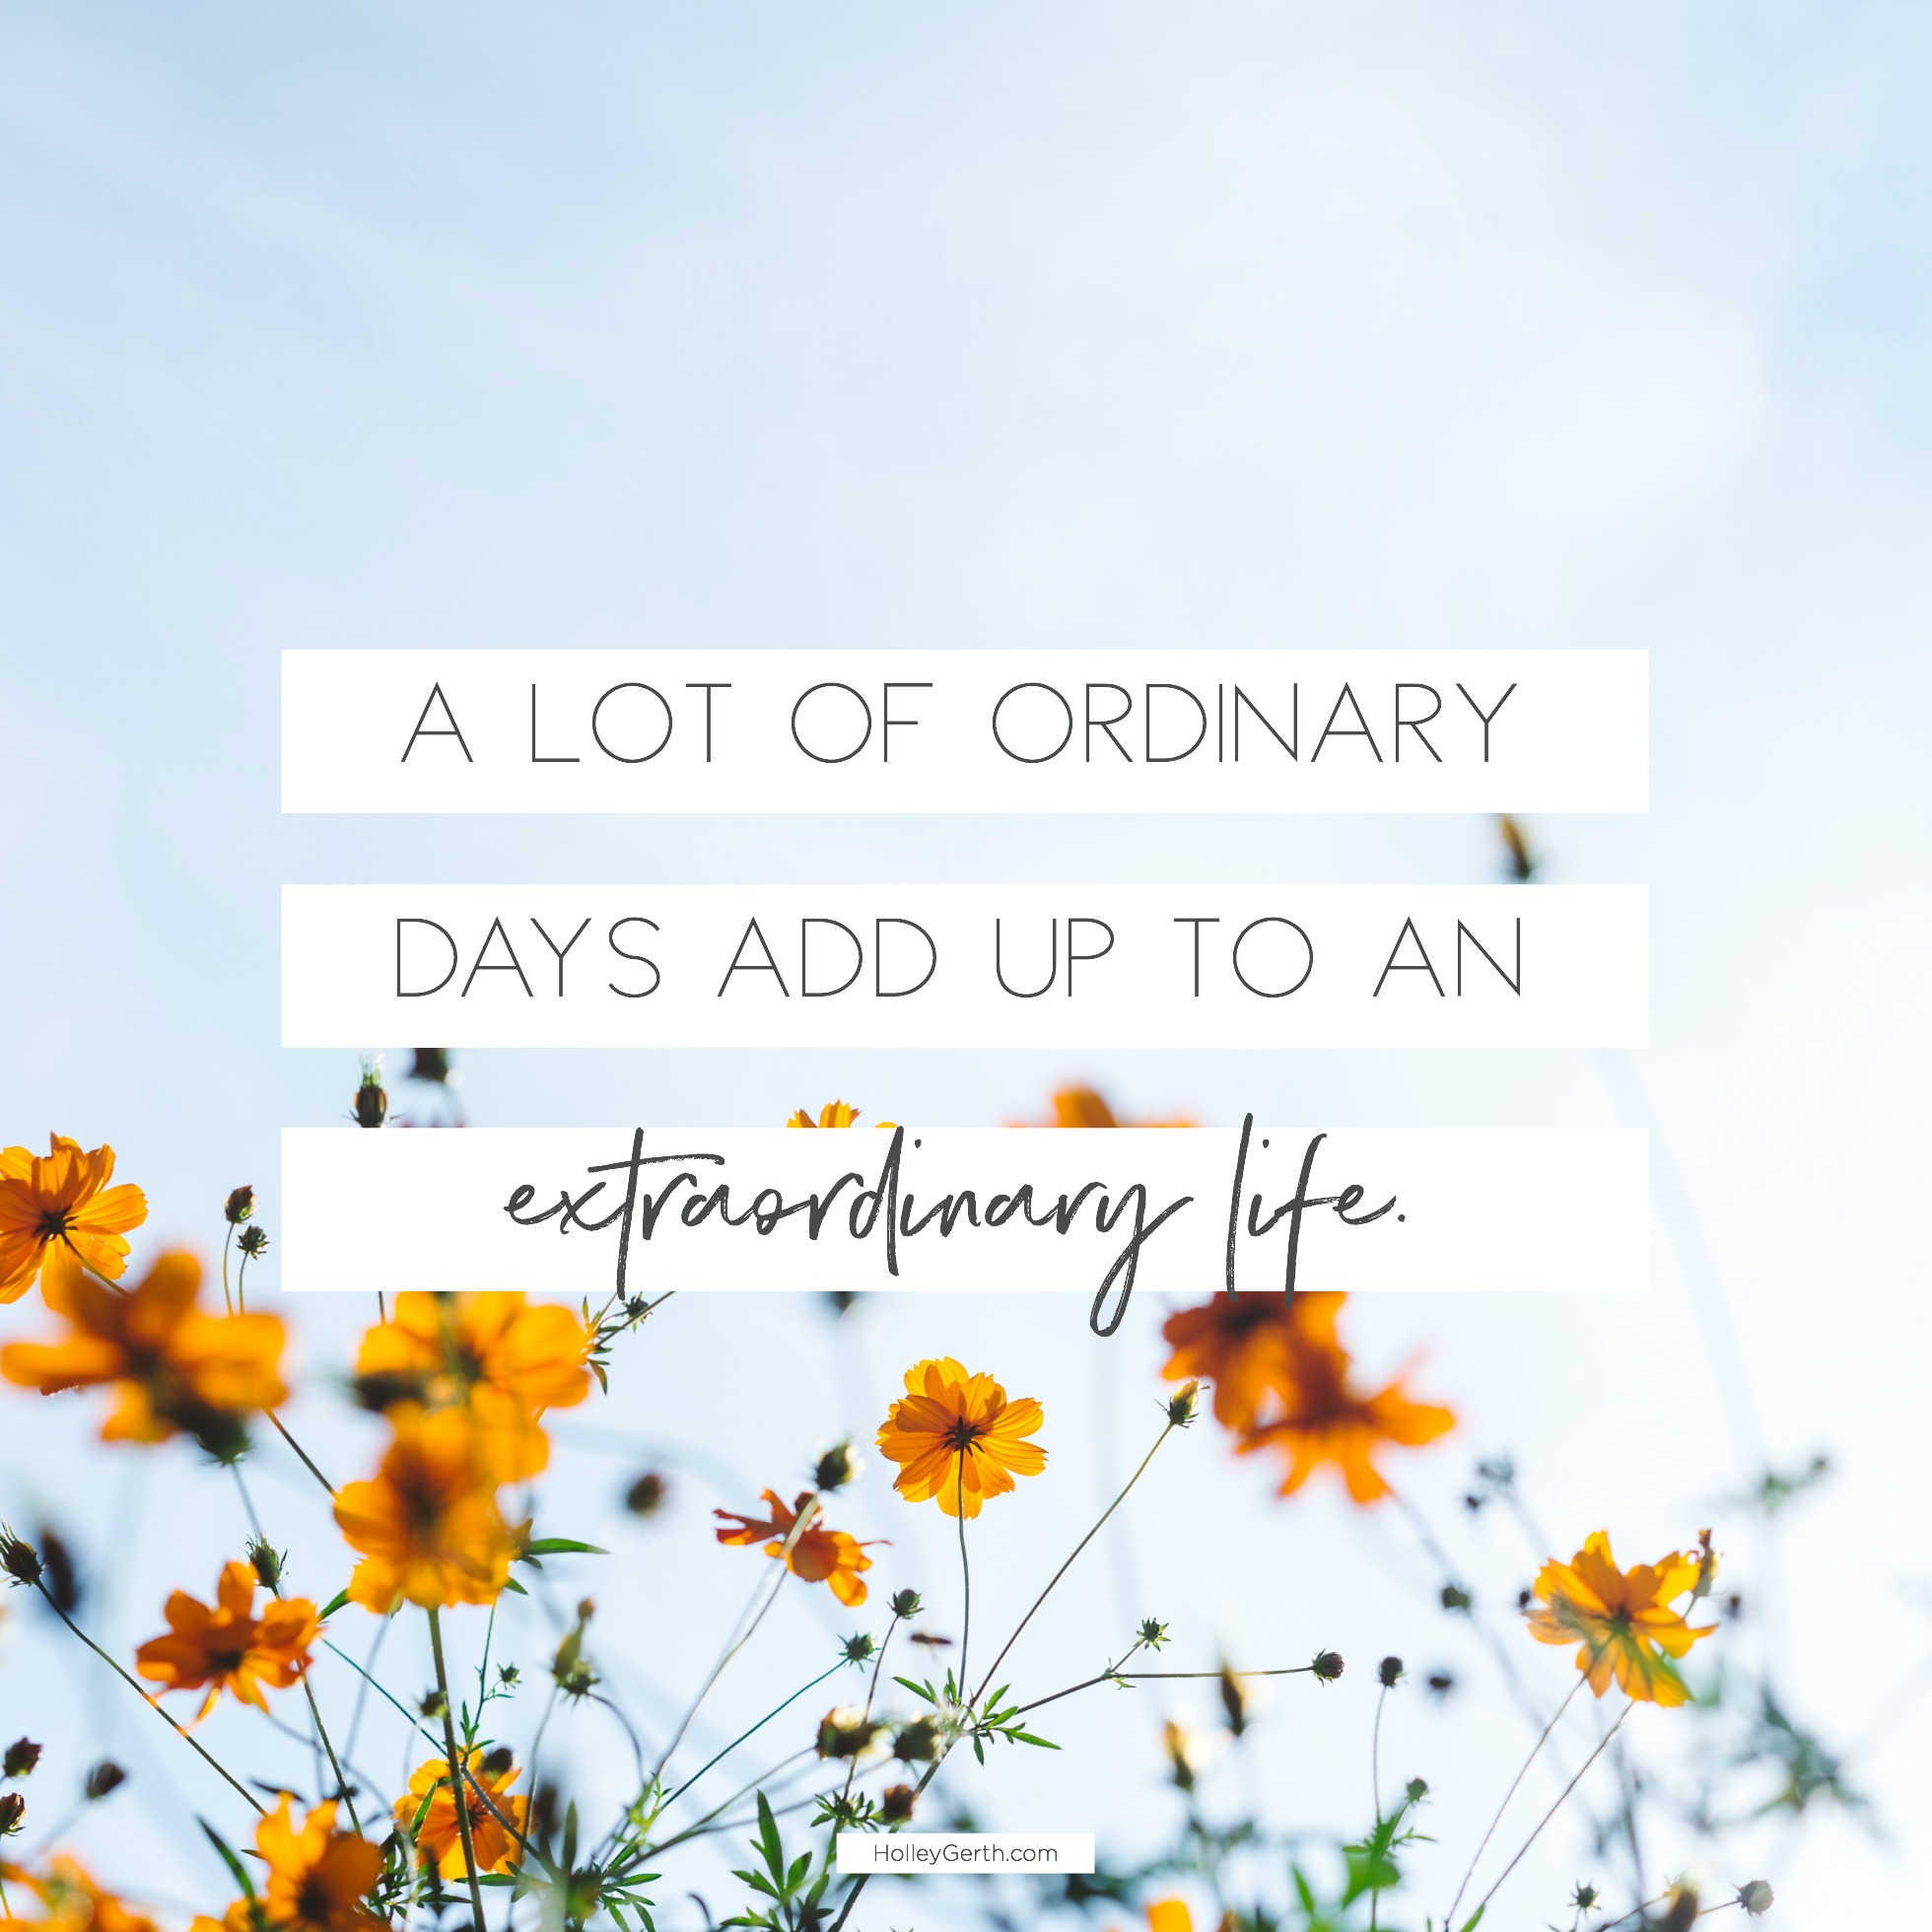 Small is the new big. Quiet the new loud. Ordinary the new extraordinary.